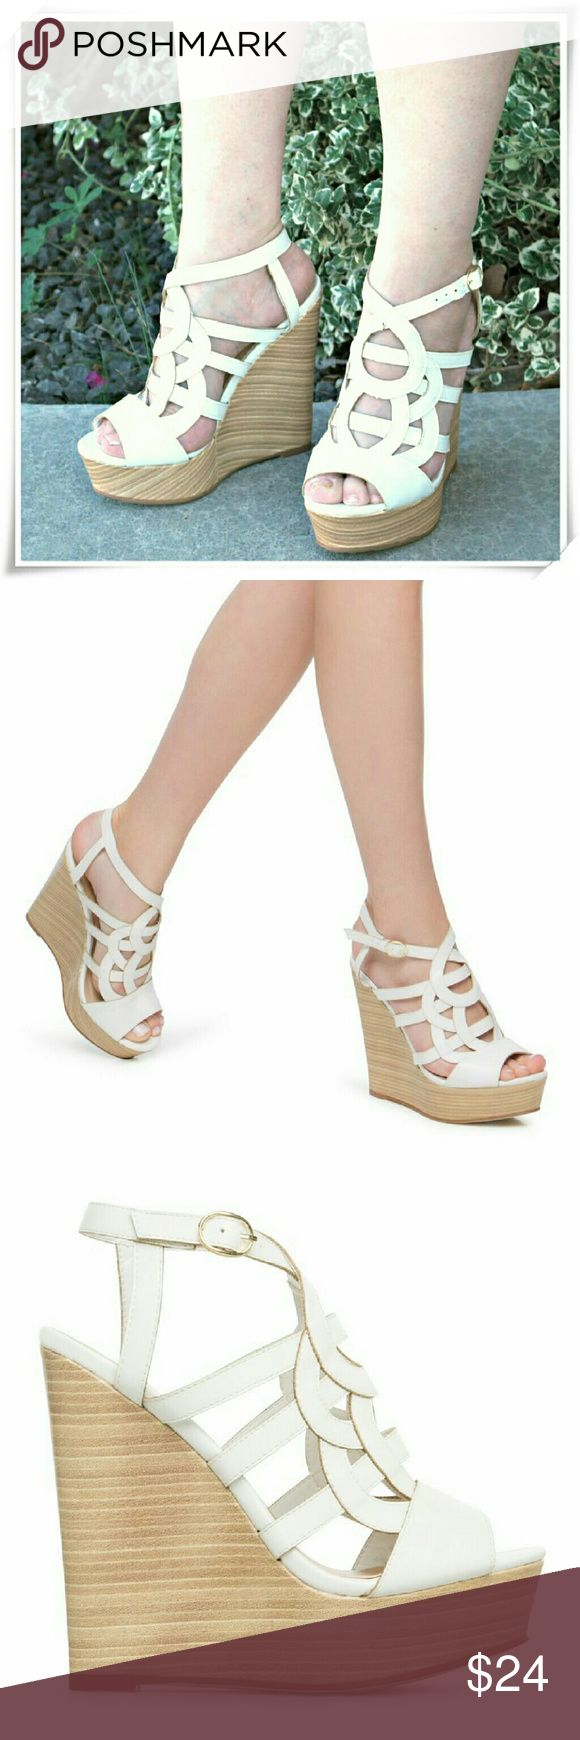 """Paisley wedge sandals heels. This wedge features summer strappy style, stacked wood platform, and chic cutouts. Comfortable light shoe.  Details: heel 5-1/2"""", platform 1-1/2"""", runs 1/4 size small, if you in between sizes, go 1/2 size up.  Please use only ✔OFFER  button for all price negotiations. I'll do a price drop⤵ for you for discounted shipping, if we agree about the price. Shoe Dazzle Shoes Sandals"""